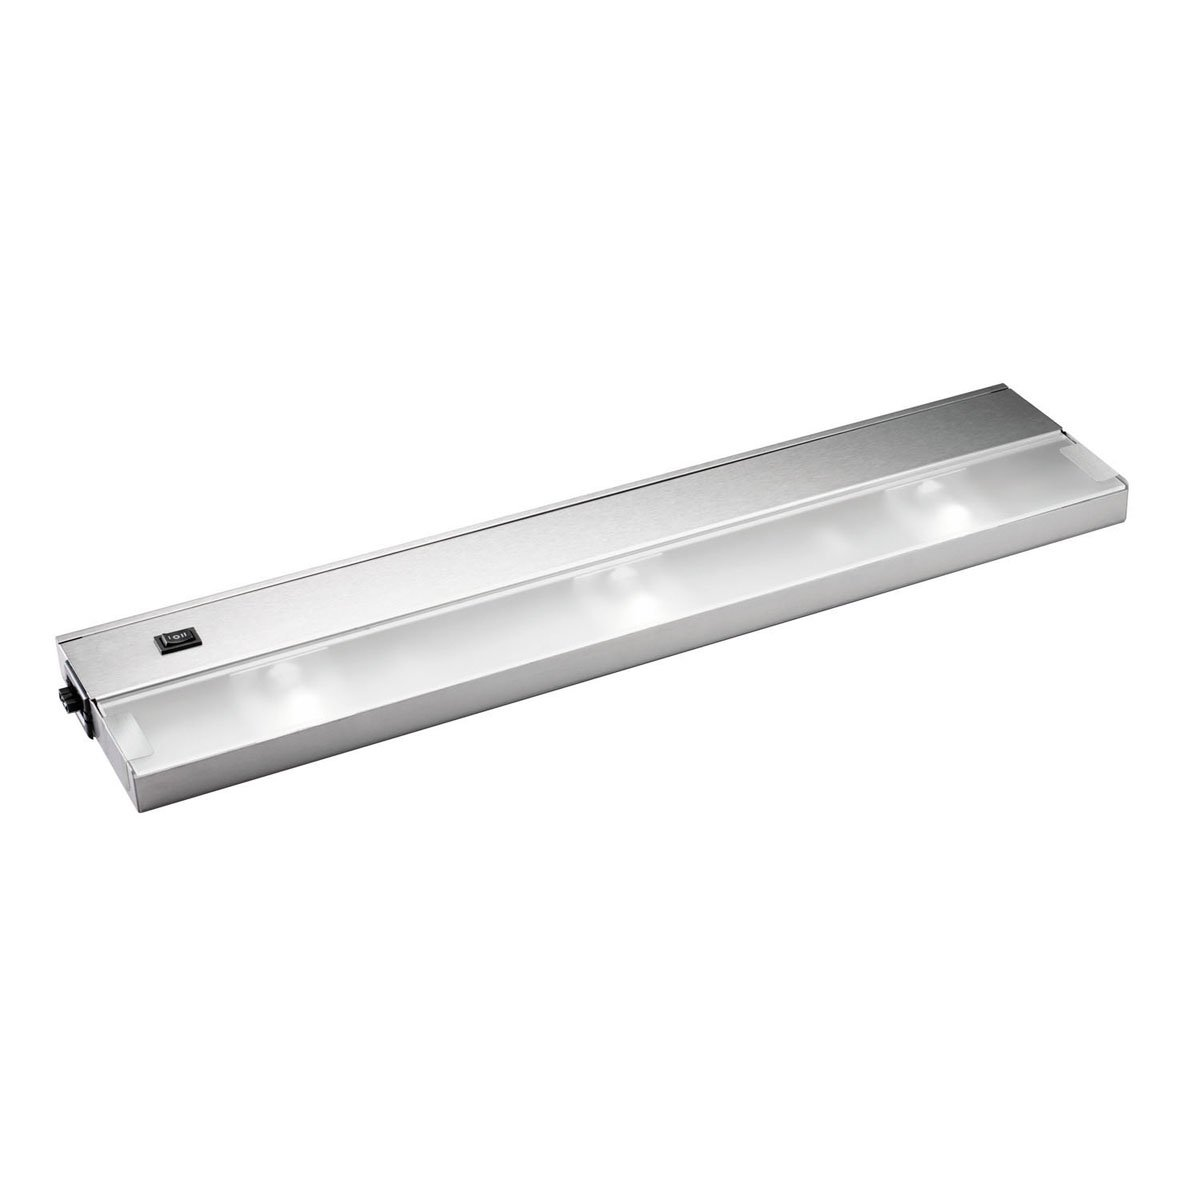 Kichler 12213SS TaskWork Modular 3LT 22IN 120V Xenon Undercabinet Light, Stainless Steel Finish with Frosted Glass Diffuser